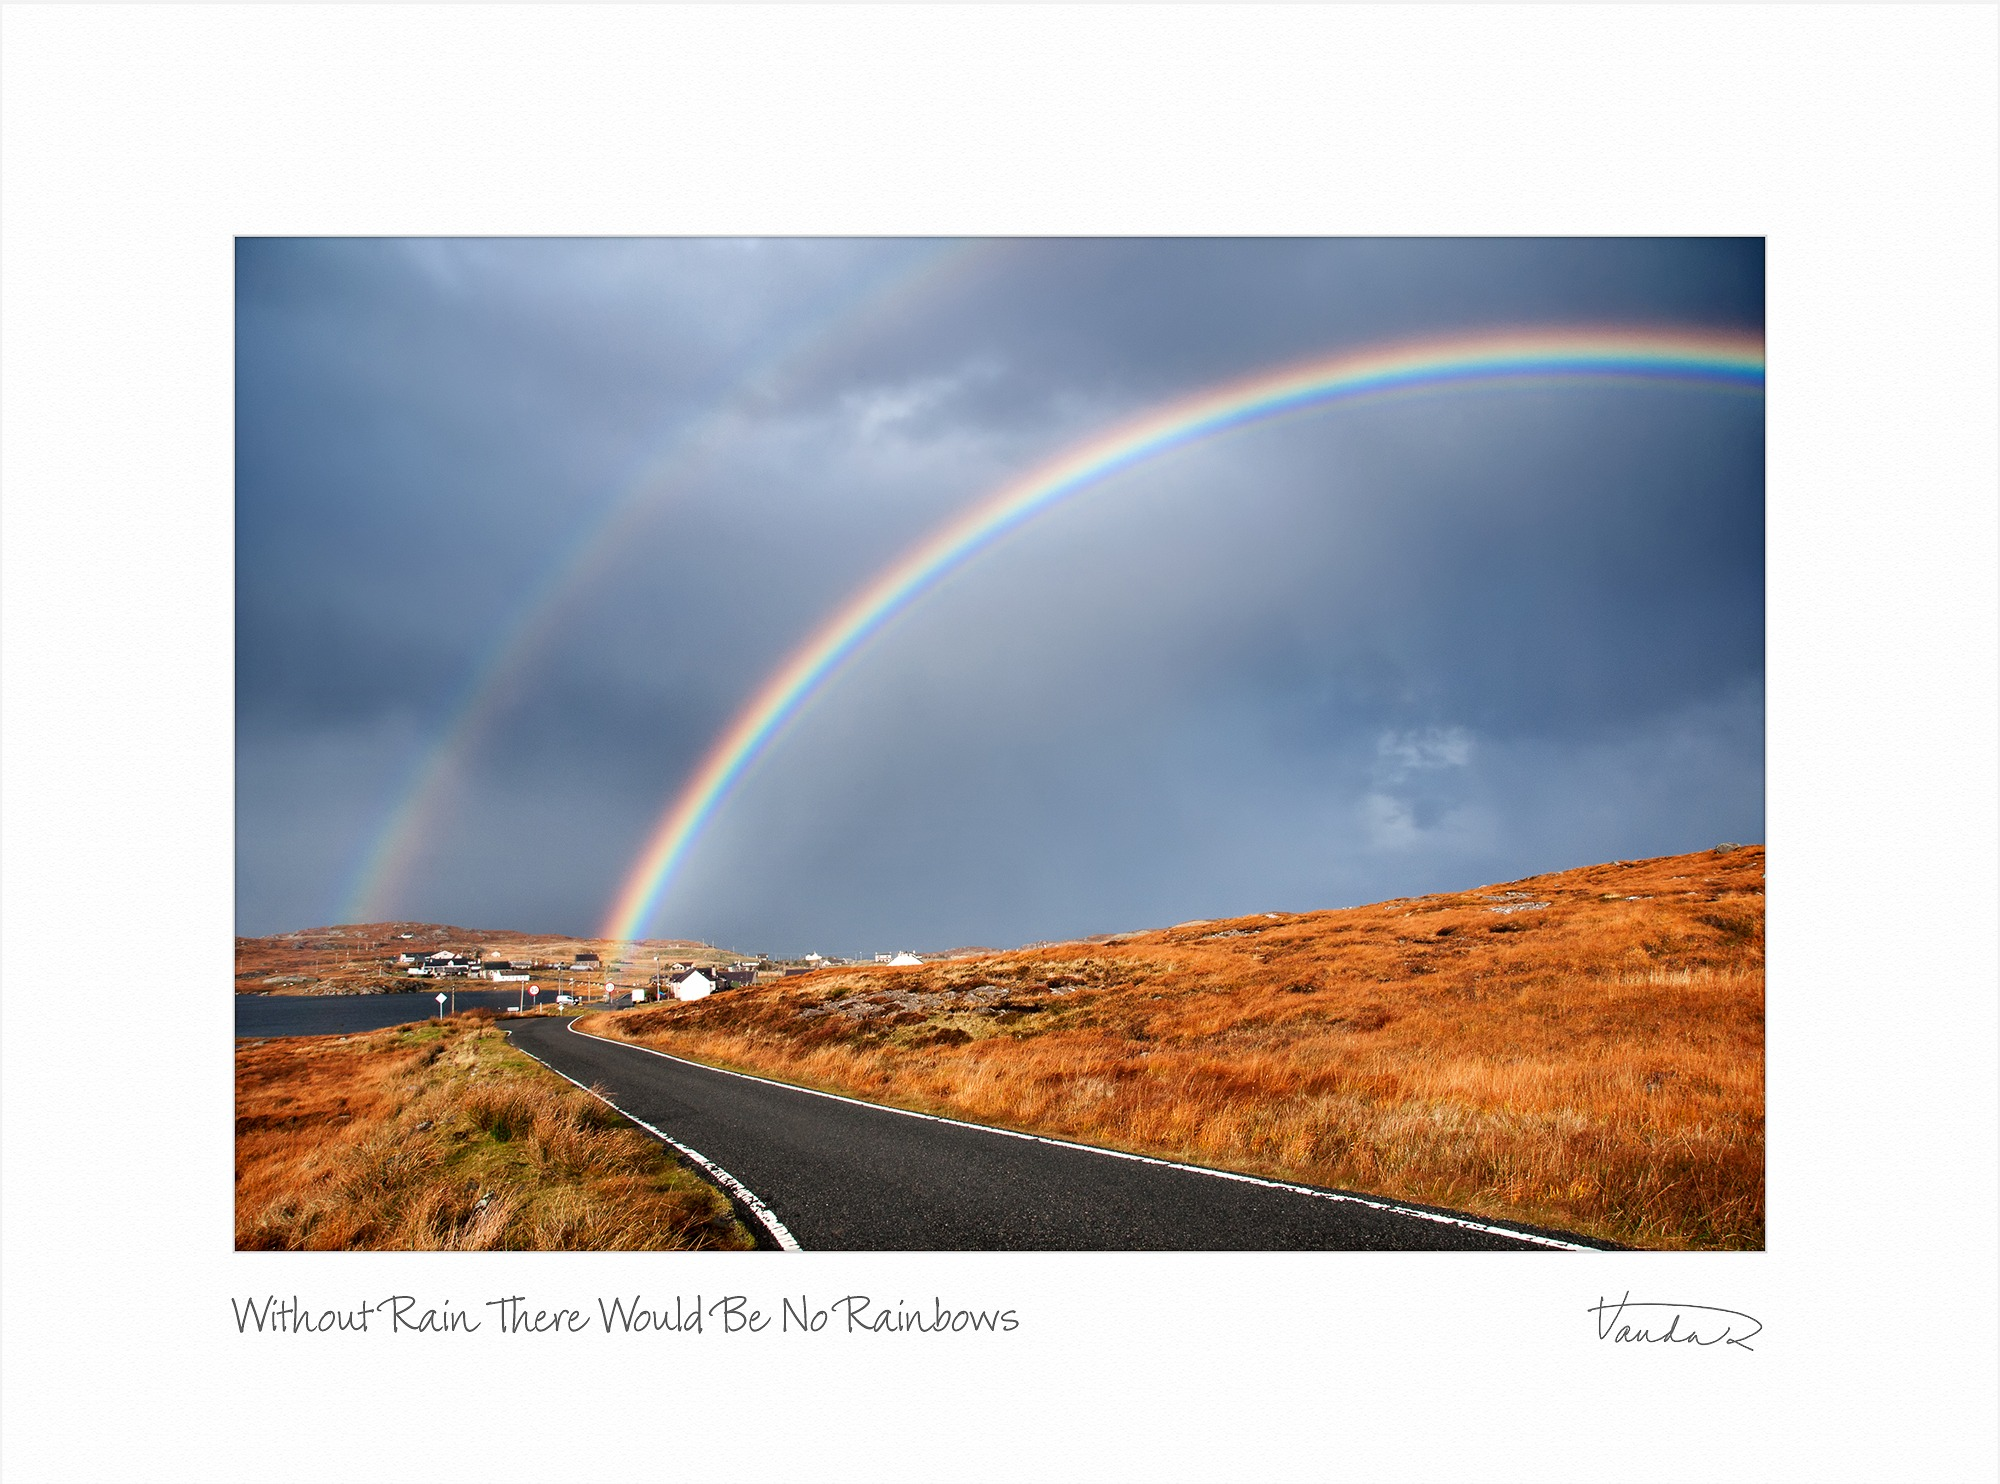 Without Rain There Would Be No Rainbows